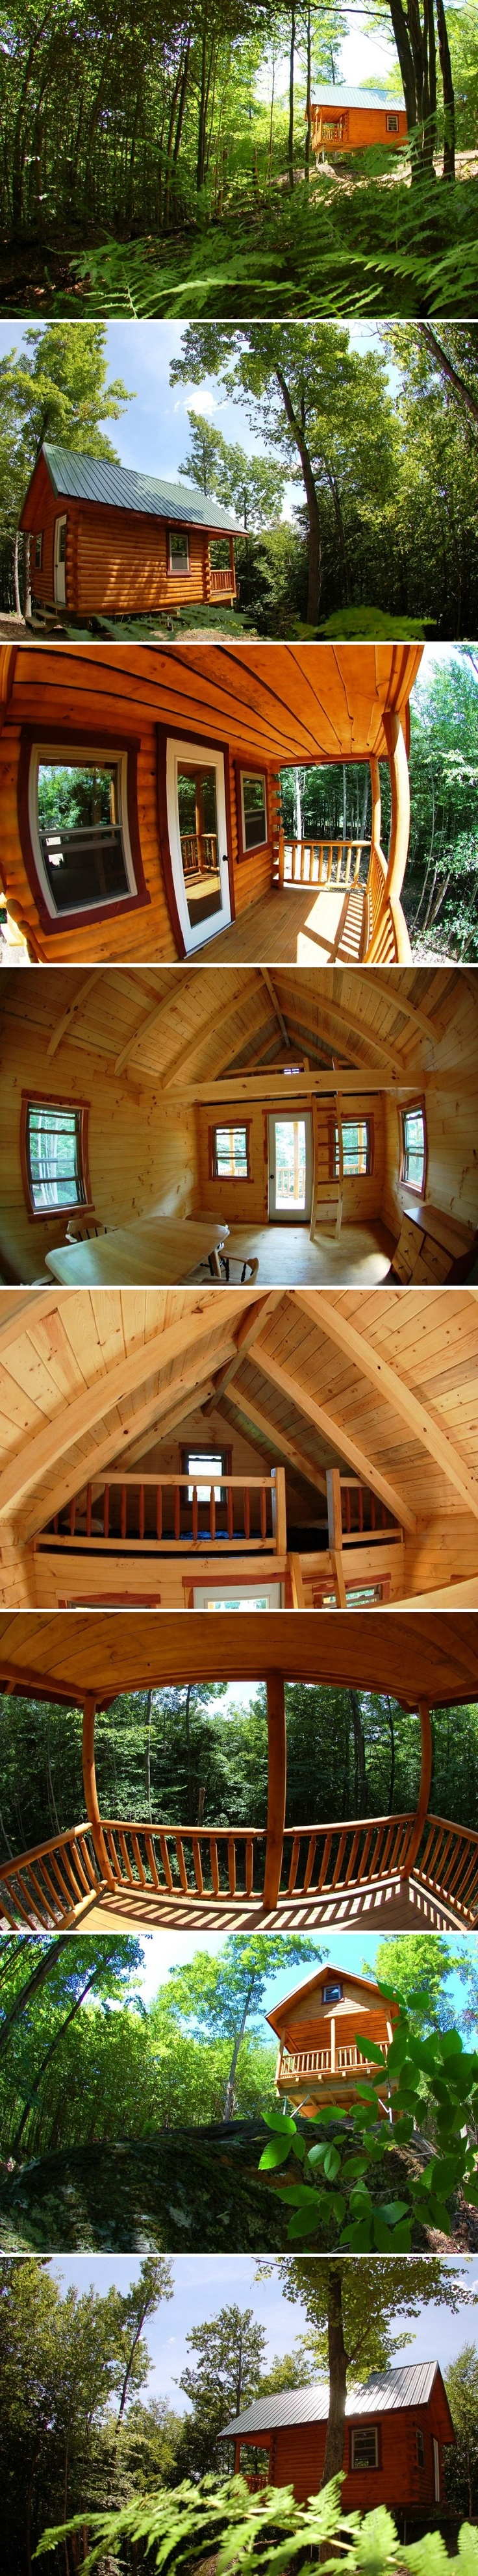 One Room Cabin Kits 45 Best Log Cabins Images On Pinterest Log Cabins Small Houses